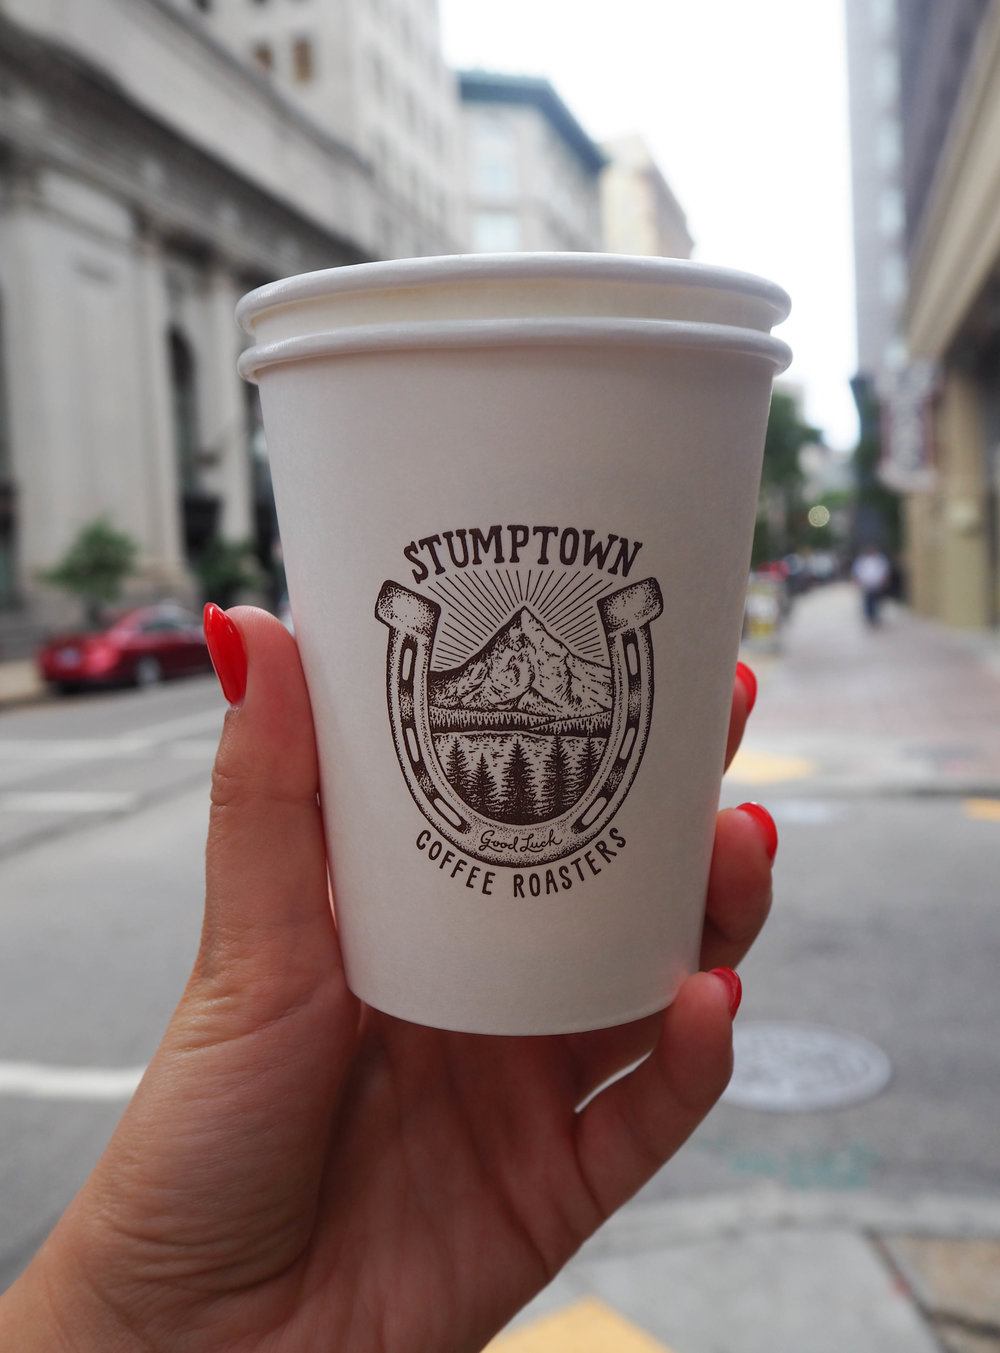 Stumptown coffee in New Orleans